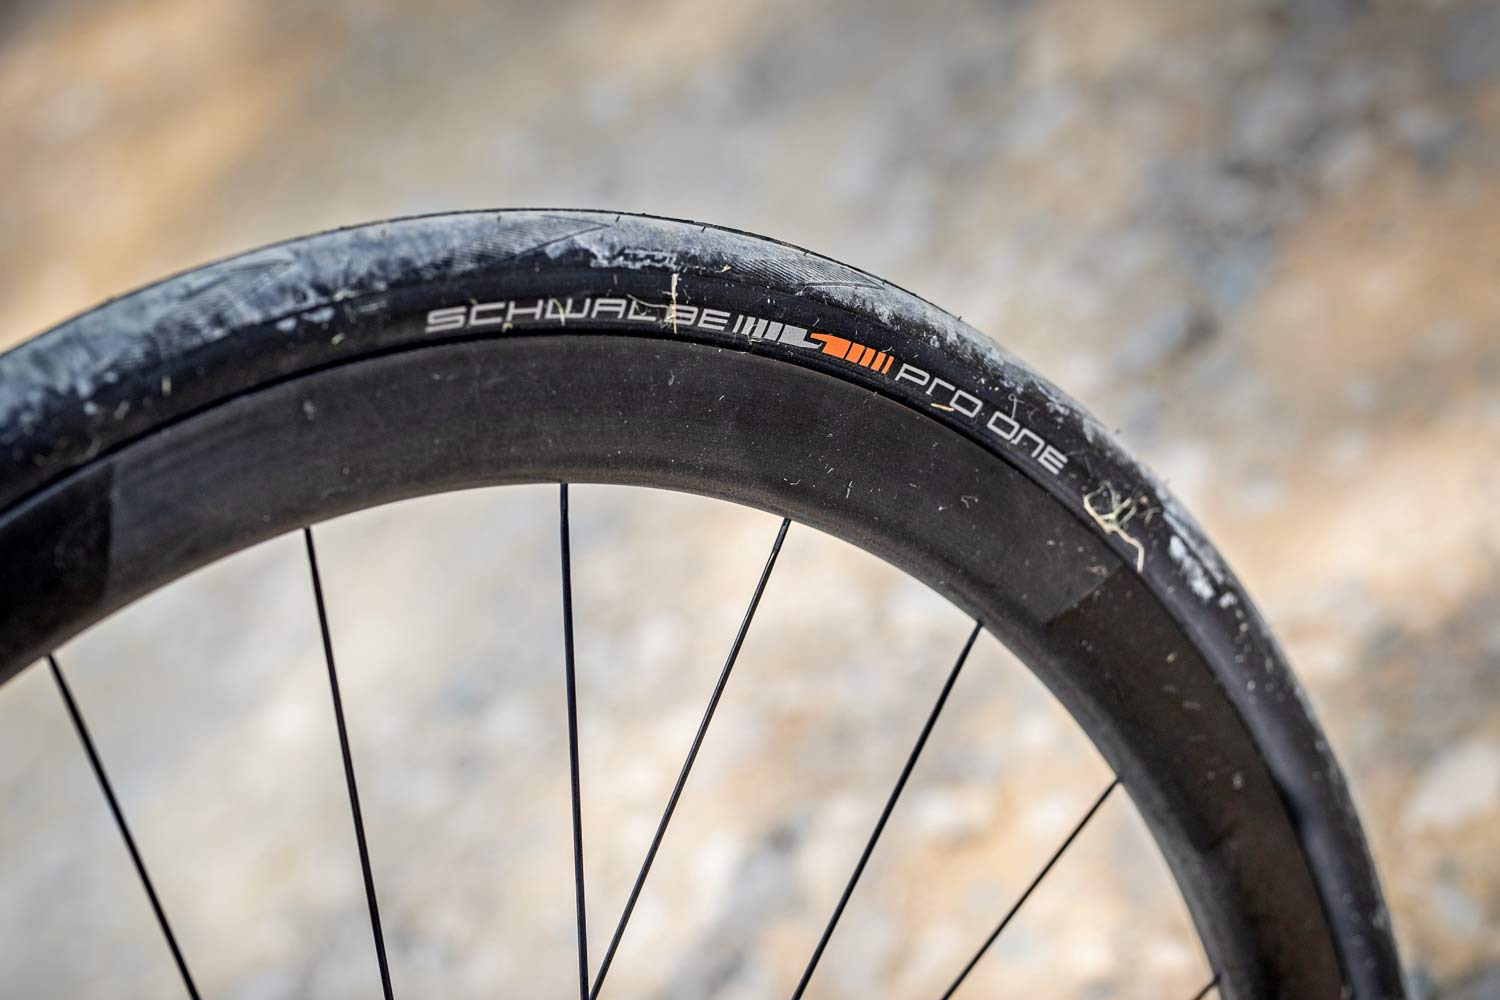 Schwalbe PRO ONE 2019 tubeless clincher 700 x 28 all black